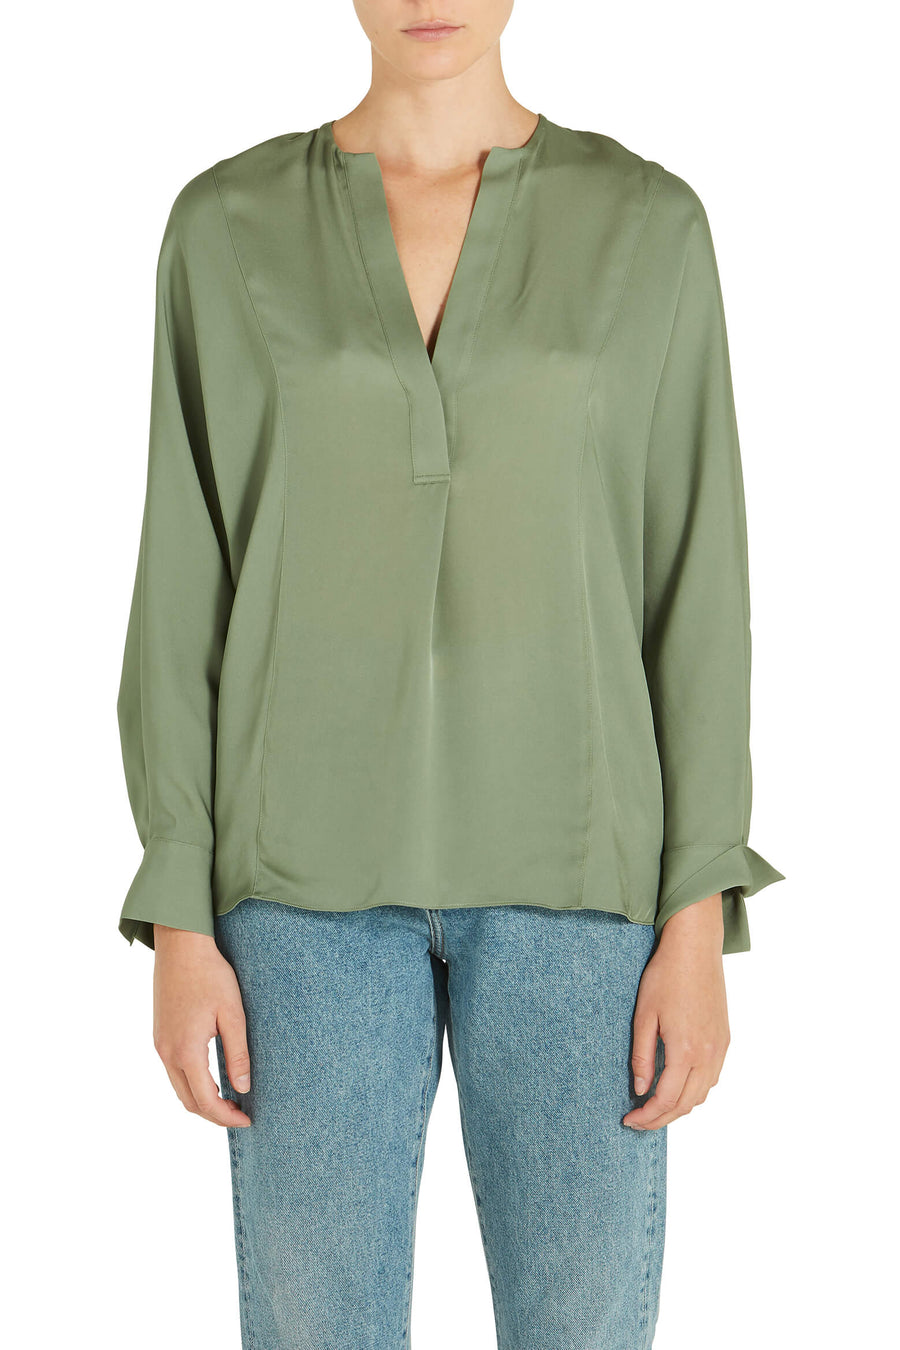 Vince Half Placket Blouse in Sage Flint from The New Trend